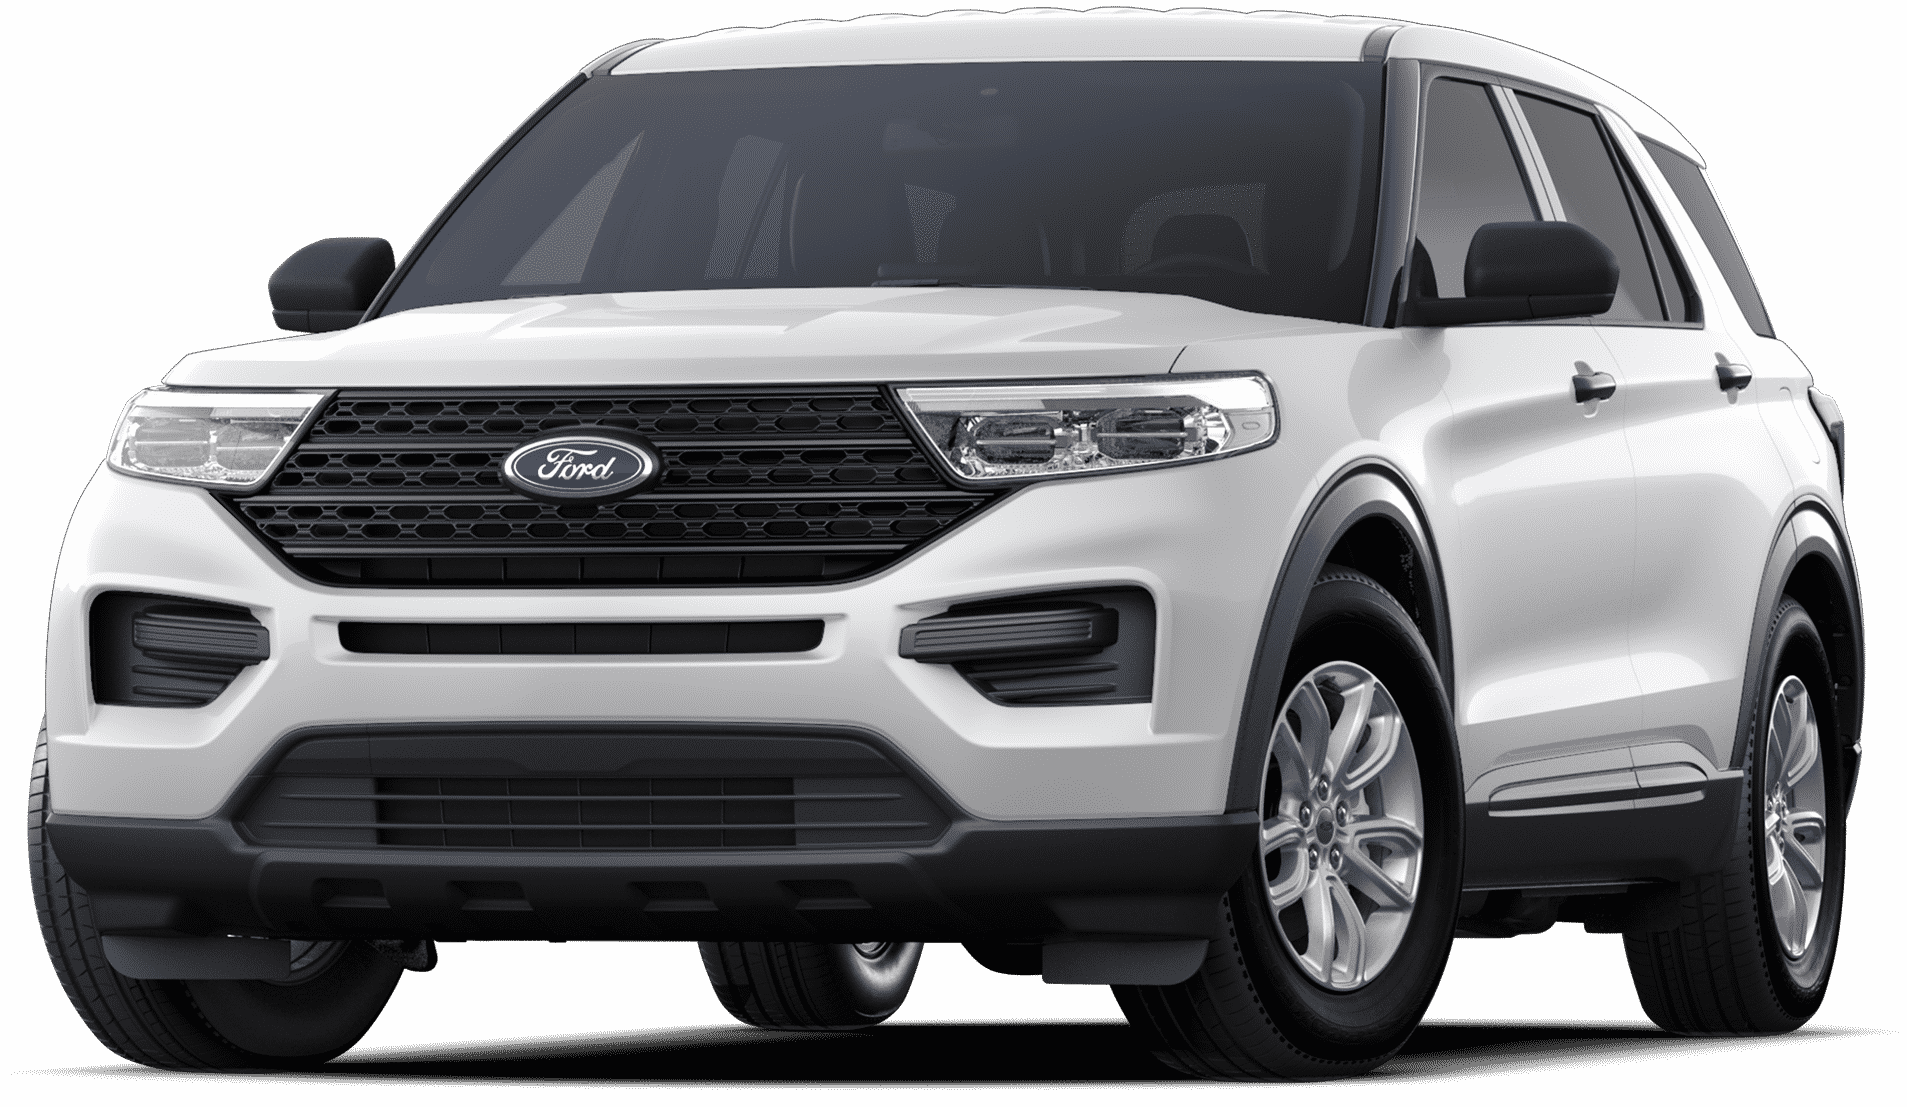 2020 Ford Explorer Lease Pricing Report